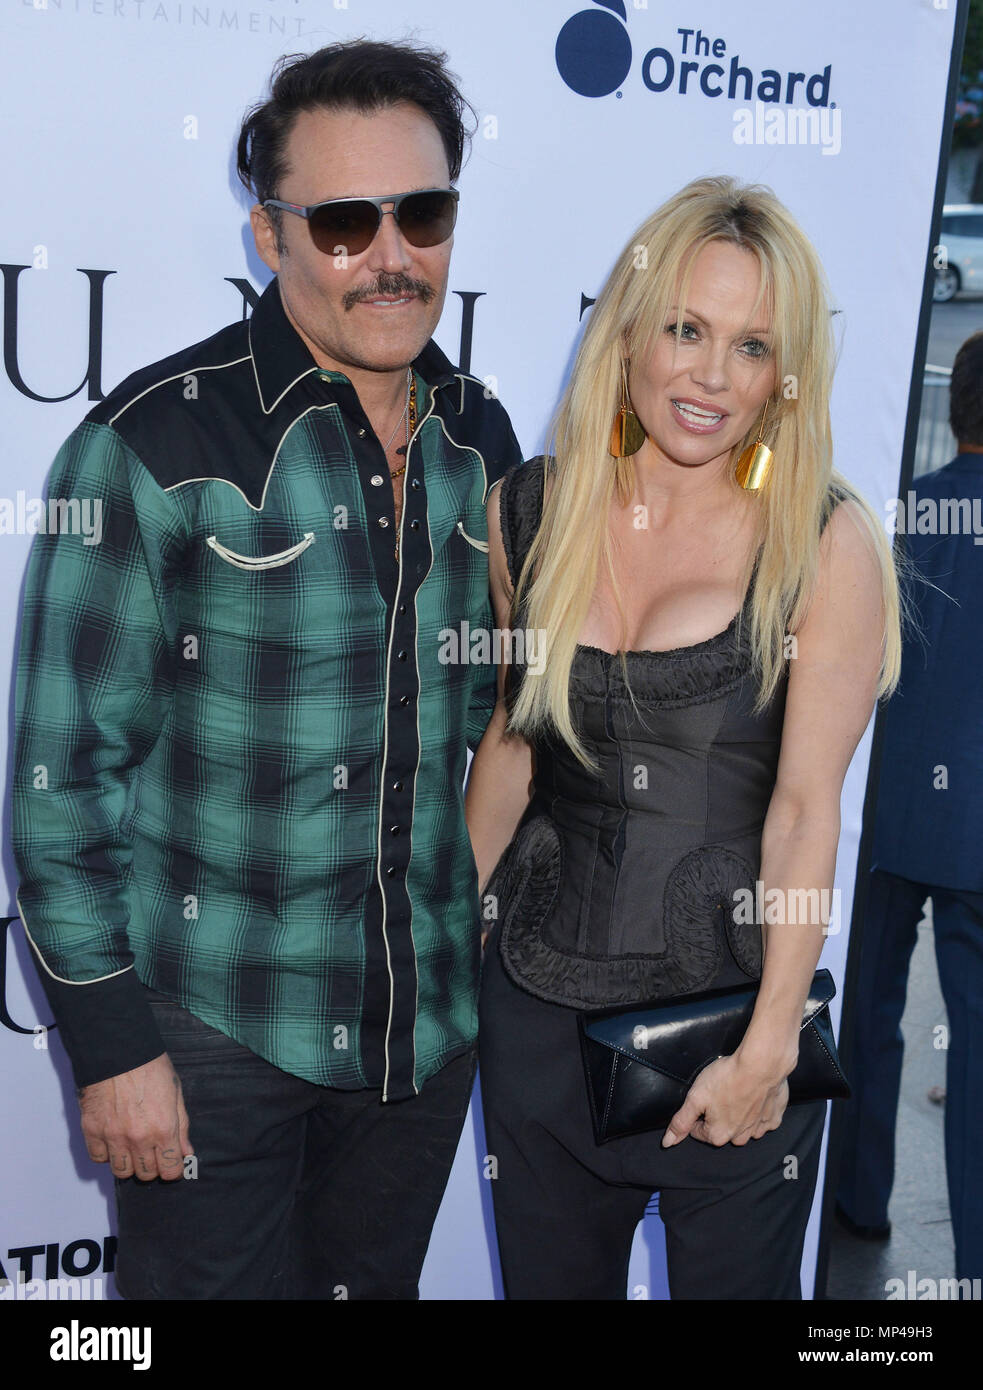 Pamela Anderson, David LaChapelle 007 at the Unity Premiere at the Director Guild Of America ( DGA ) Theatre in Los Angeles. June 24, 2015.Pamela Anderson, David LaChapelle 007 ------------- Red Carpet Event, Vertical, USA, Film Industry, Celebrities,  Photography, Bestof, Arts Culture and Entertainment, Topix Celebrities fashion /  Vertical, Best of, Event in Hollywood Life - California,  Red Carpet and backstage, USA, Film Industry, Celebrities,  movie celebrities, TV celebrities, Music celebrities, Photography, Bestof, Arts Culture and Entertainment,  Topix, vertical,  family from from the  - Stock Image